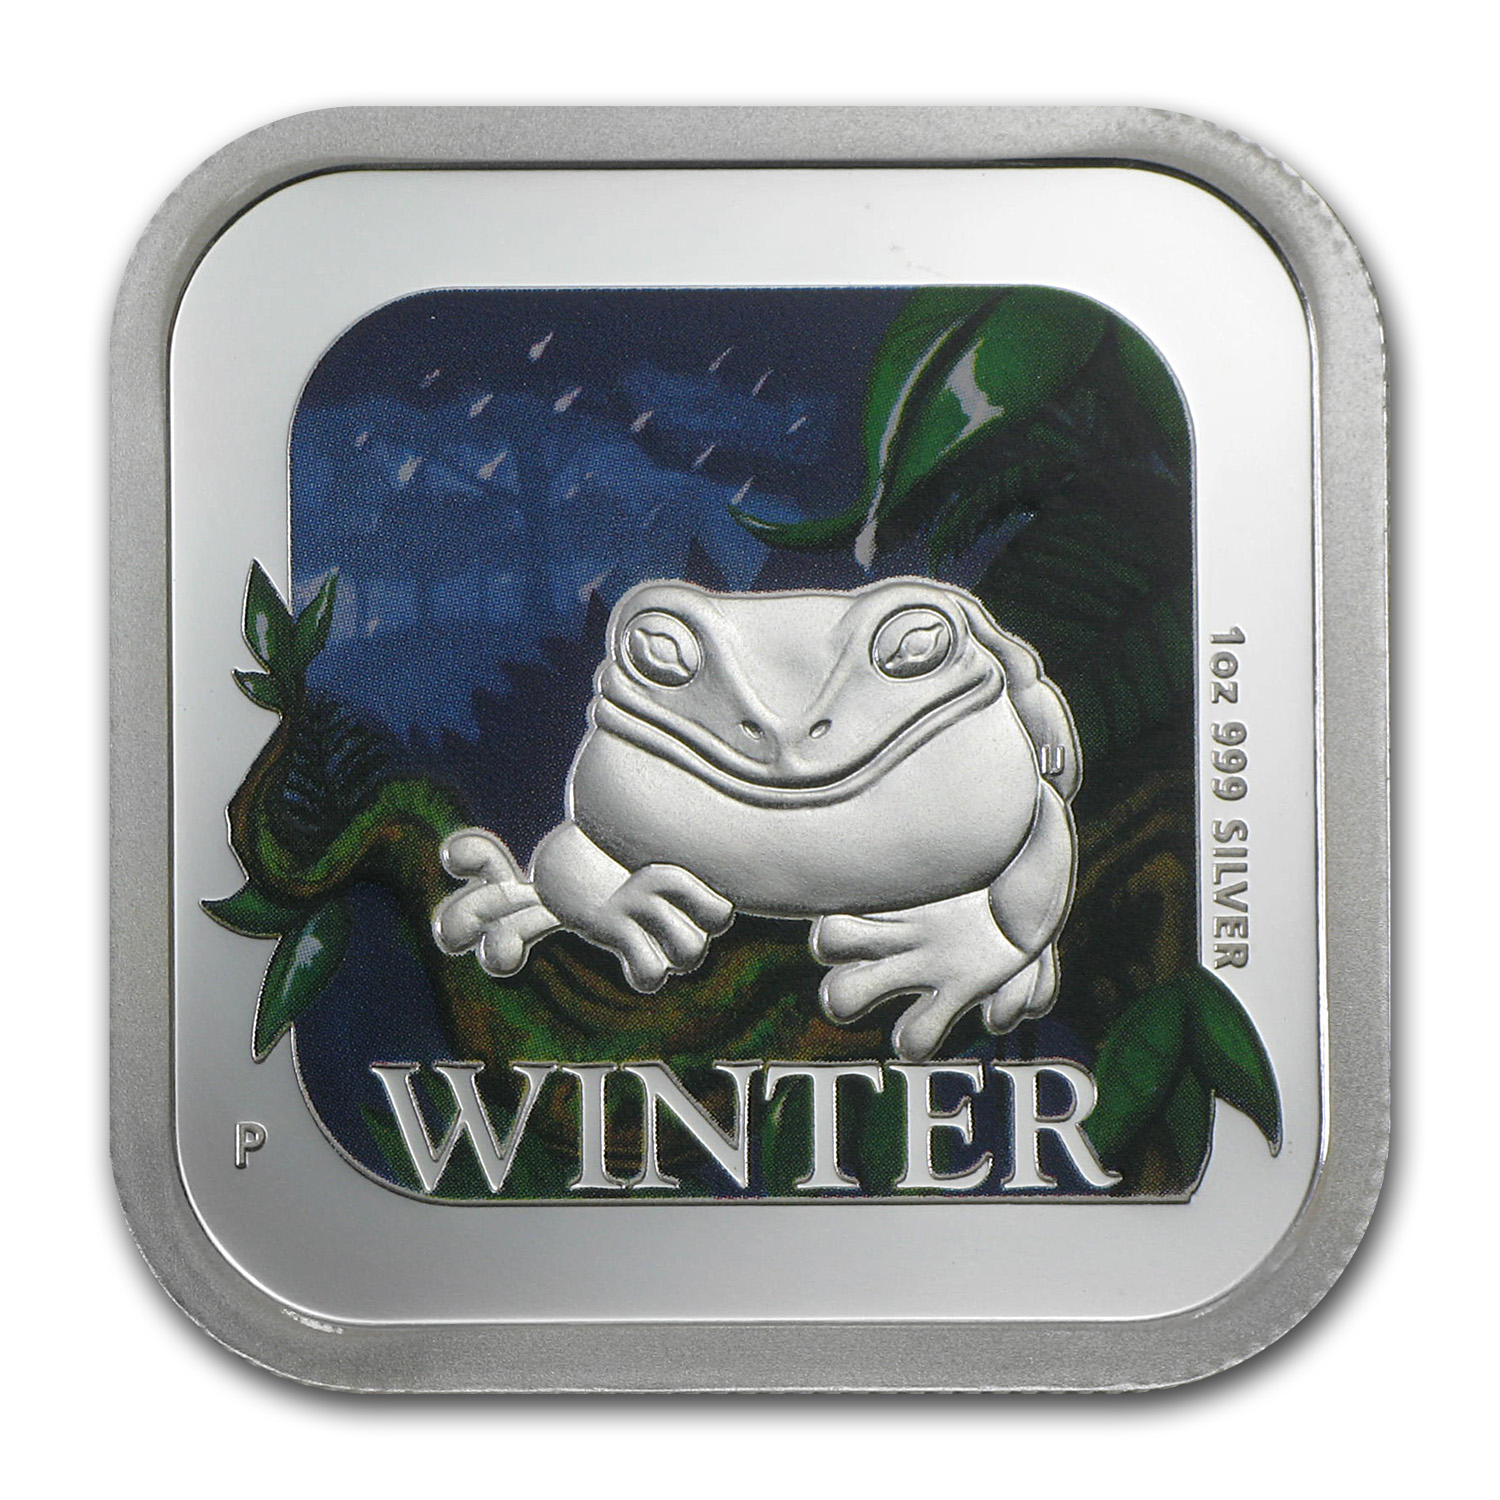 2013 1 oz Proof Silver Winter - Australian Seasons